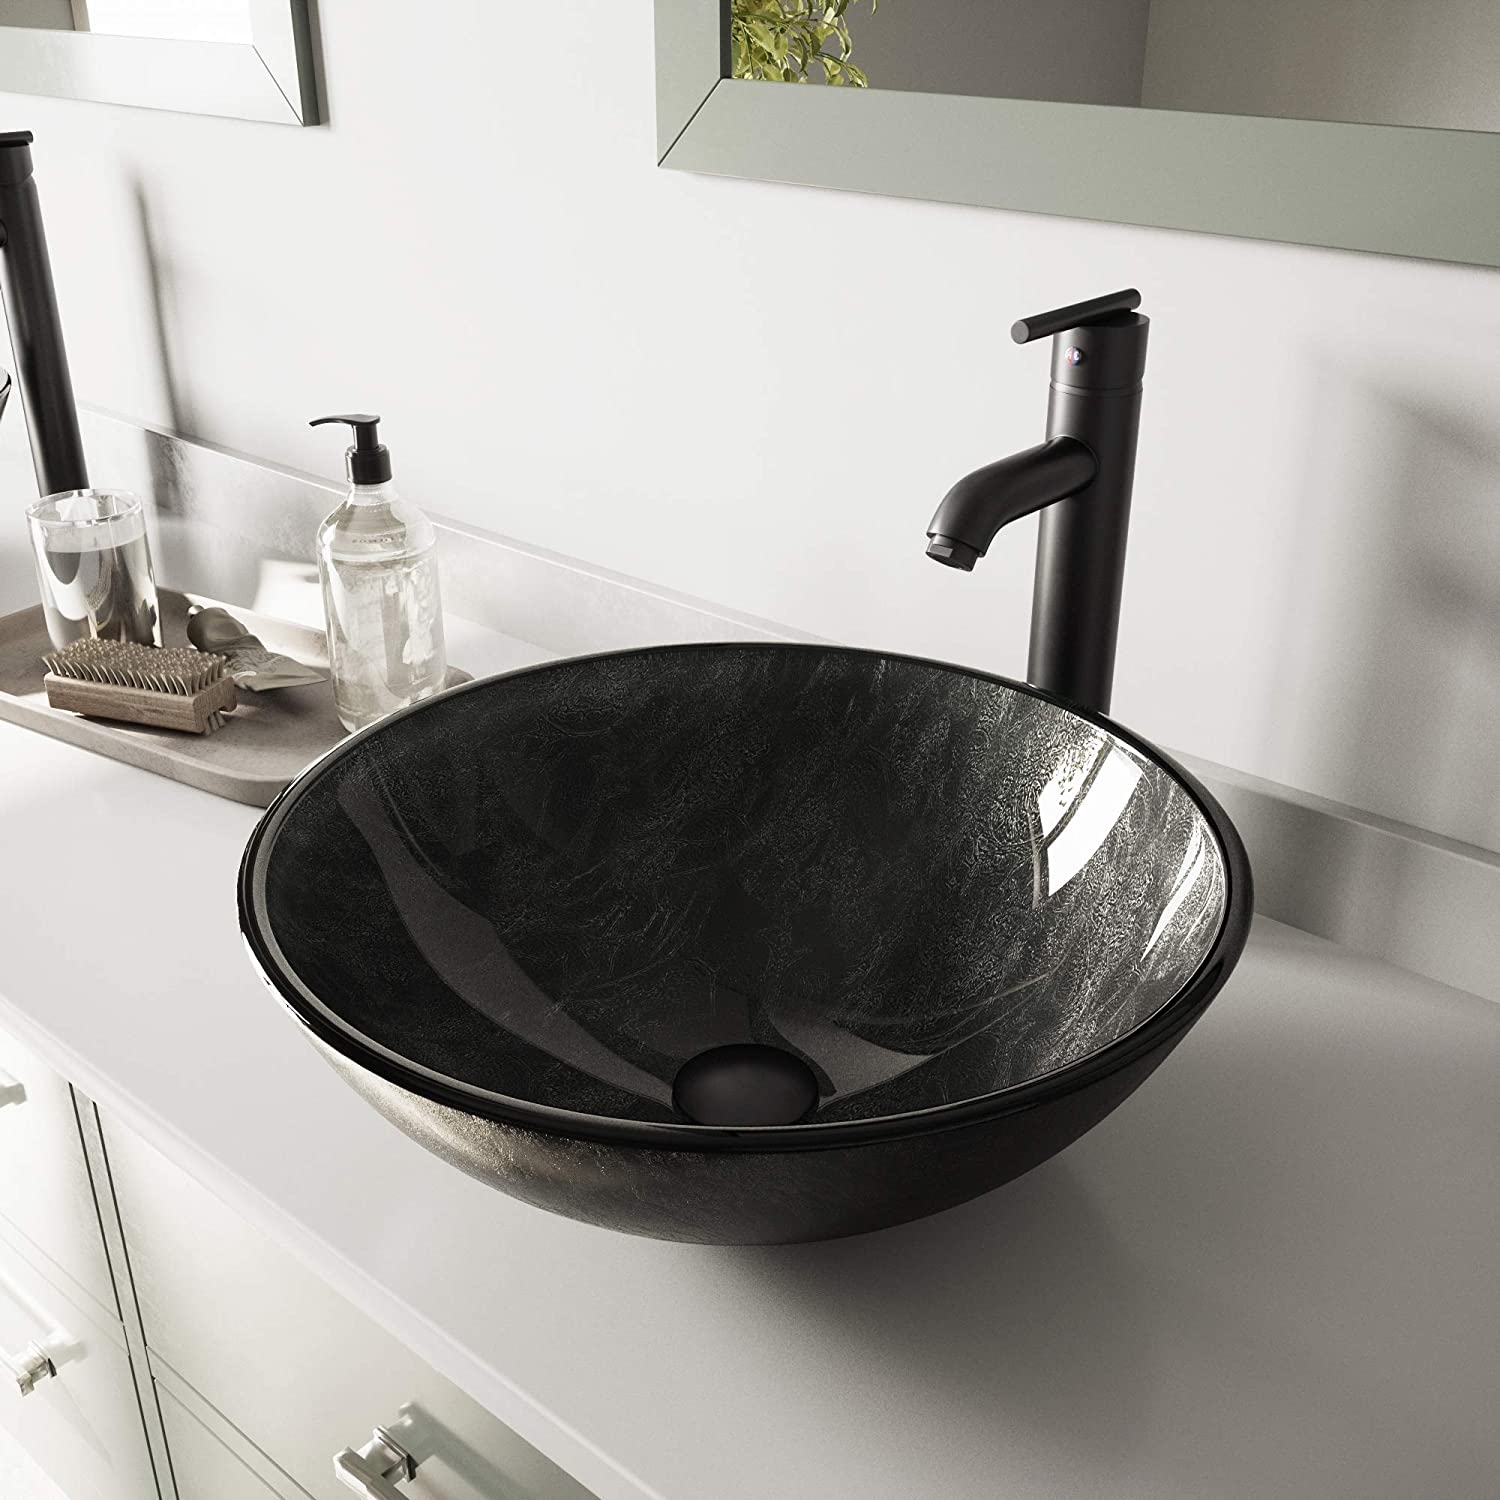 VIGO Gray Onyx Glass Vessel Bathroom Sink and Seville Vessel Faucet with Pop Up, Matte Black